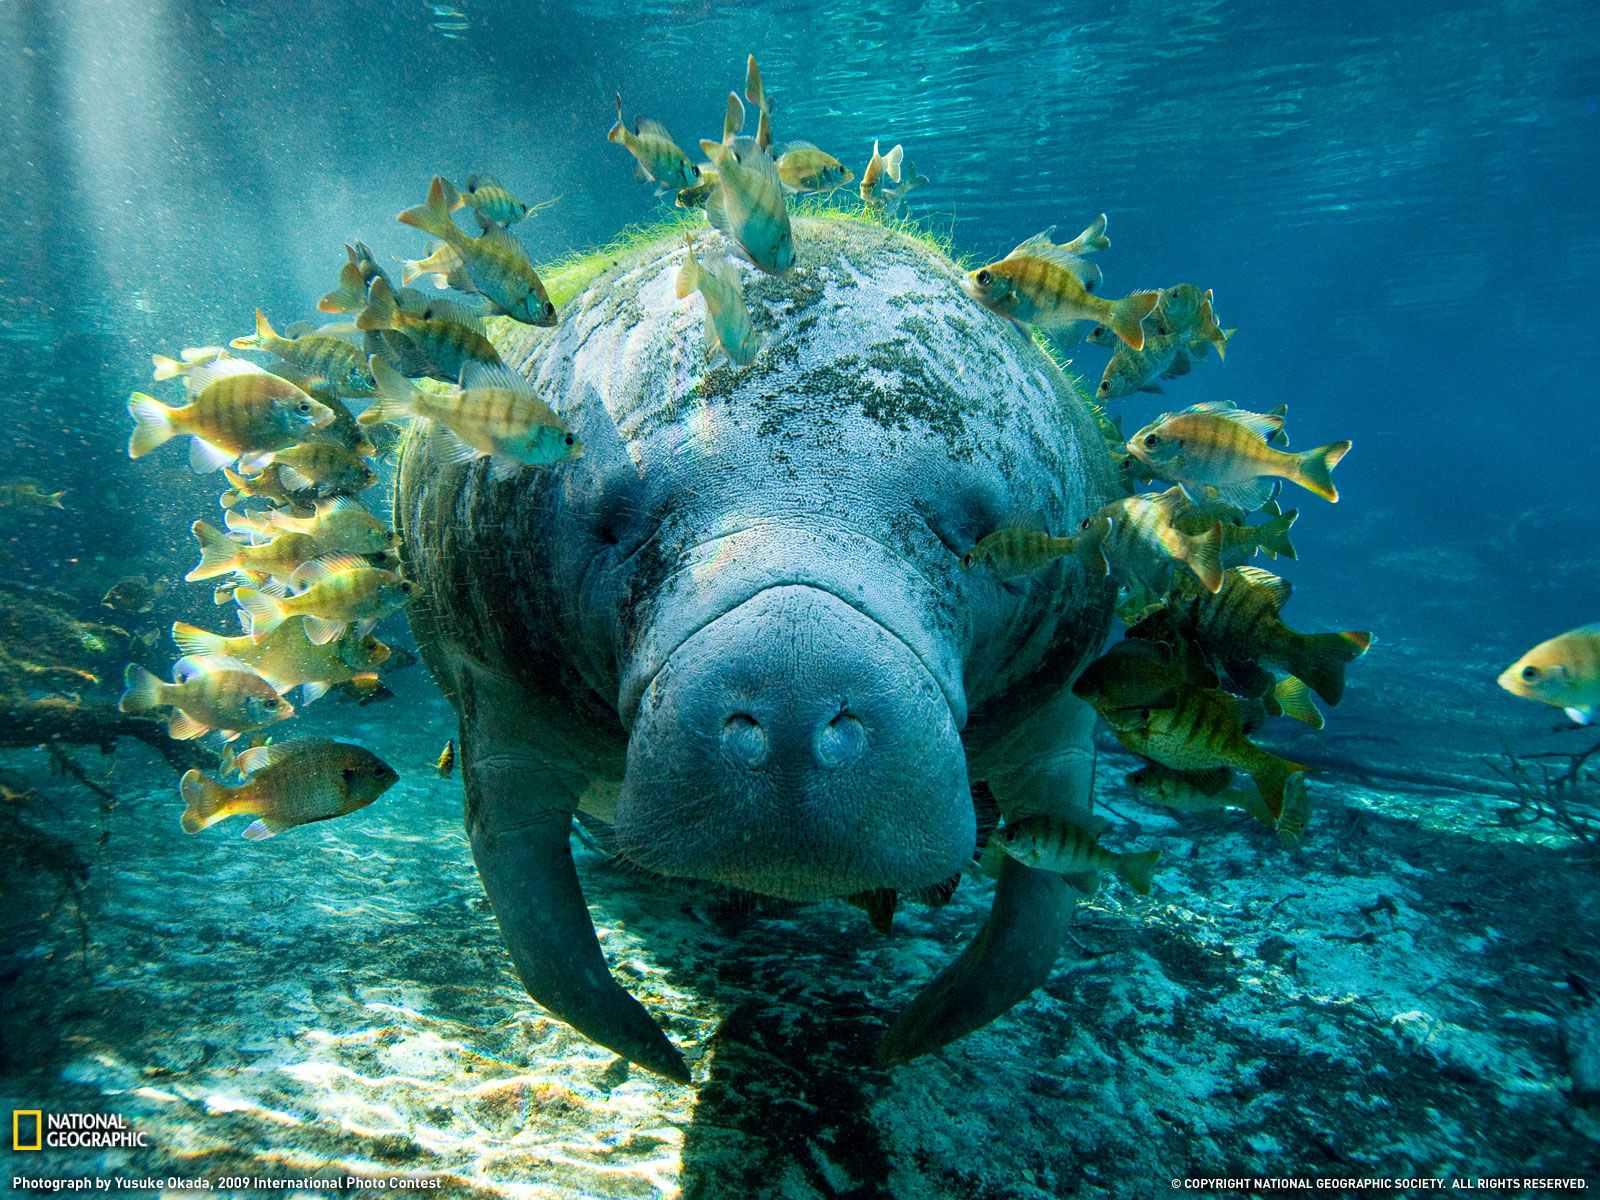 Second Grade: The Manatees